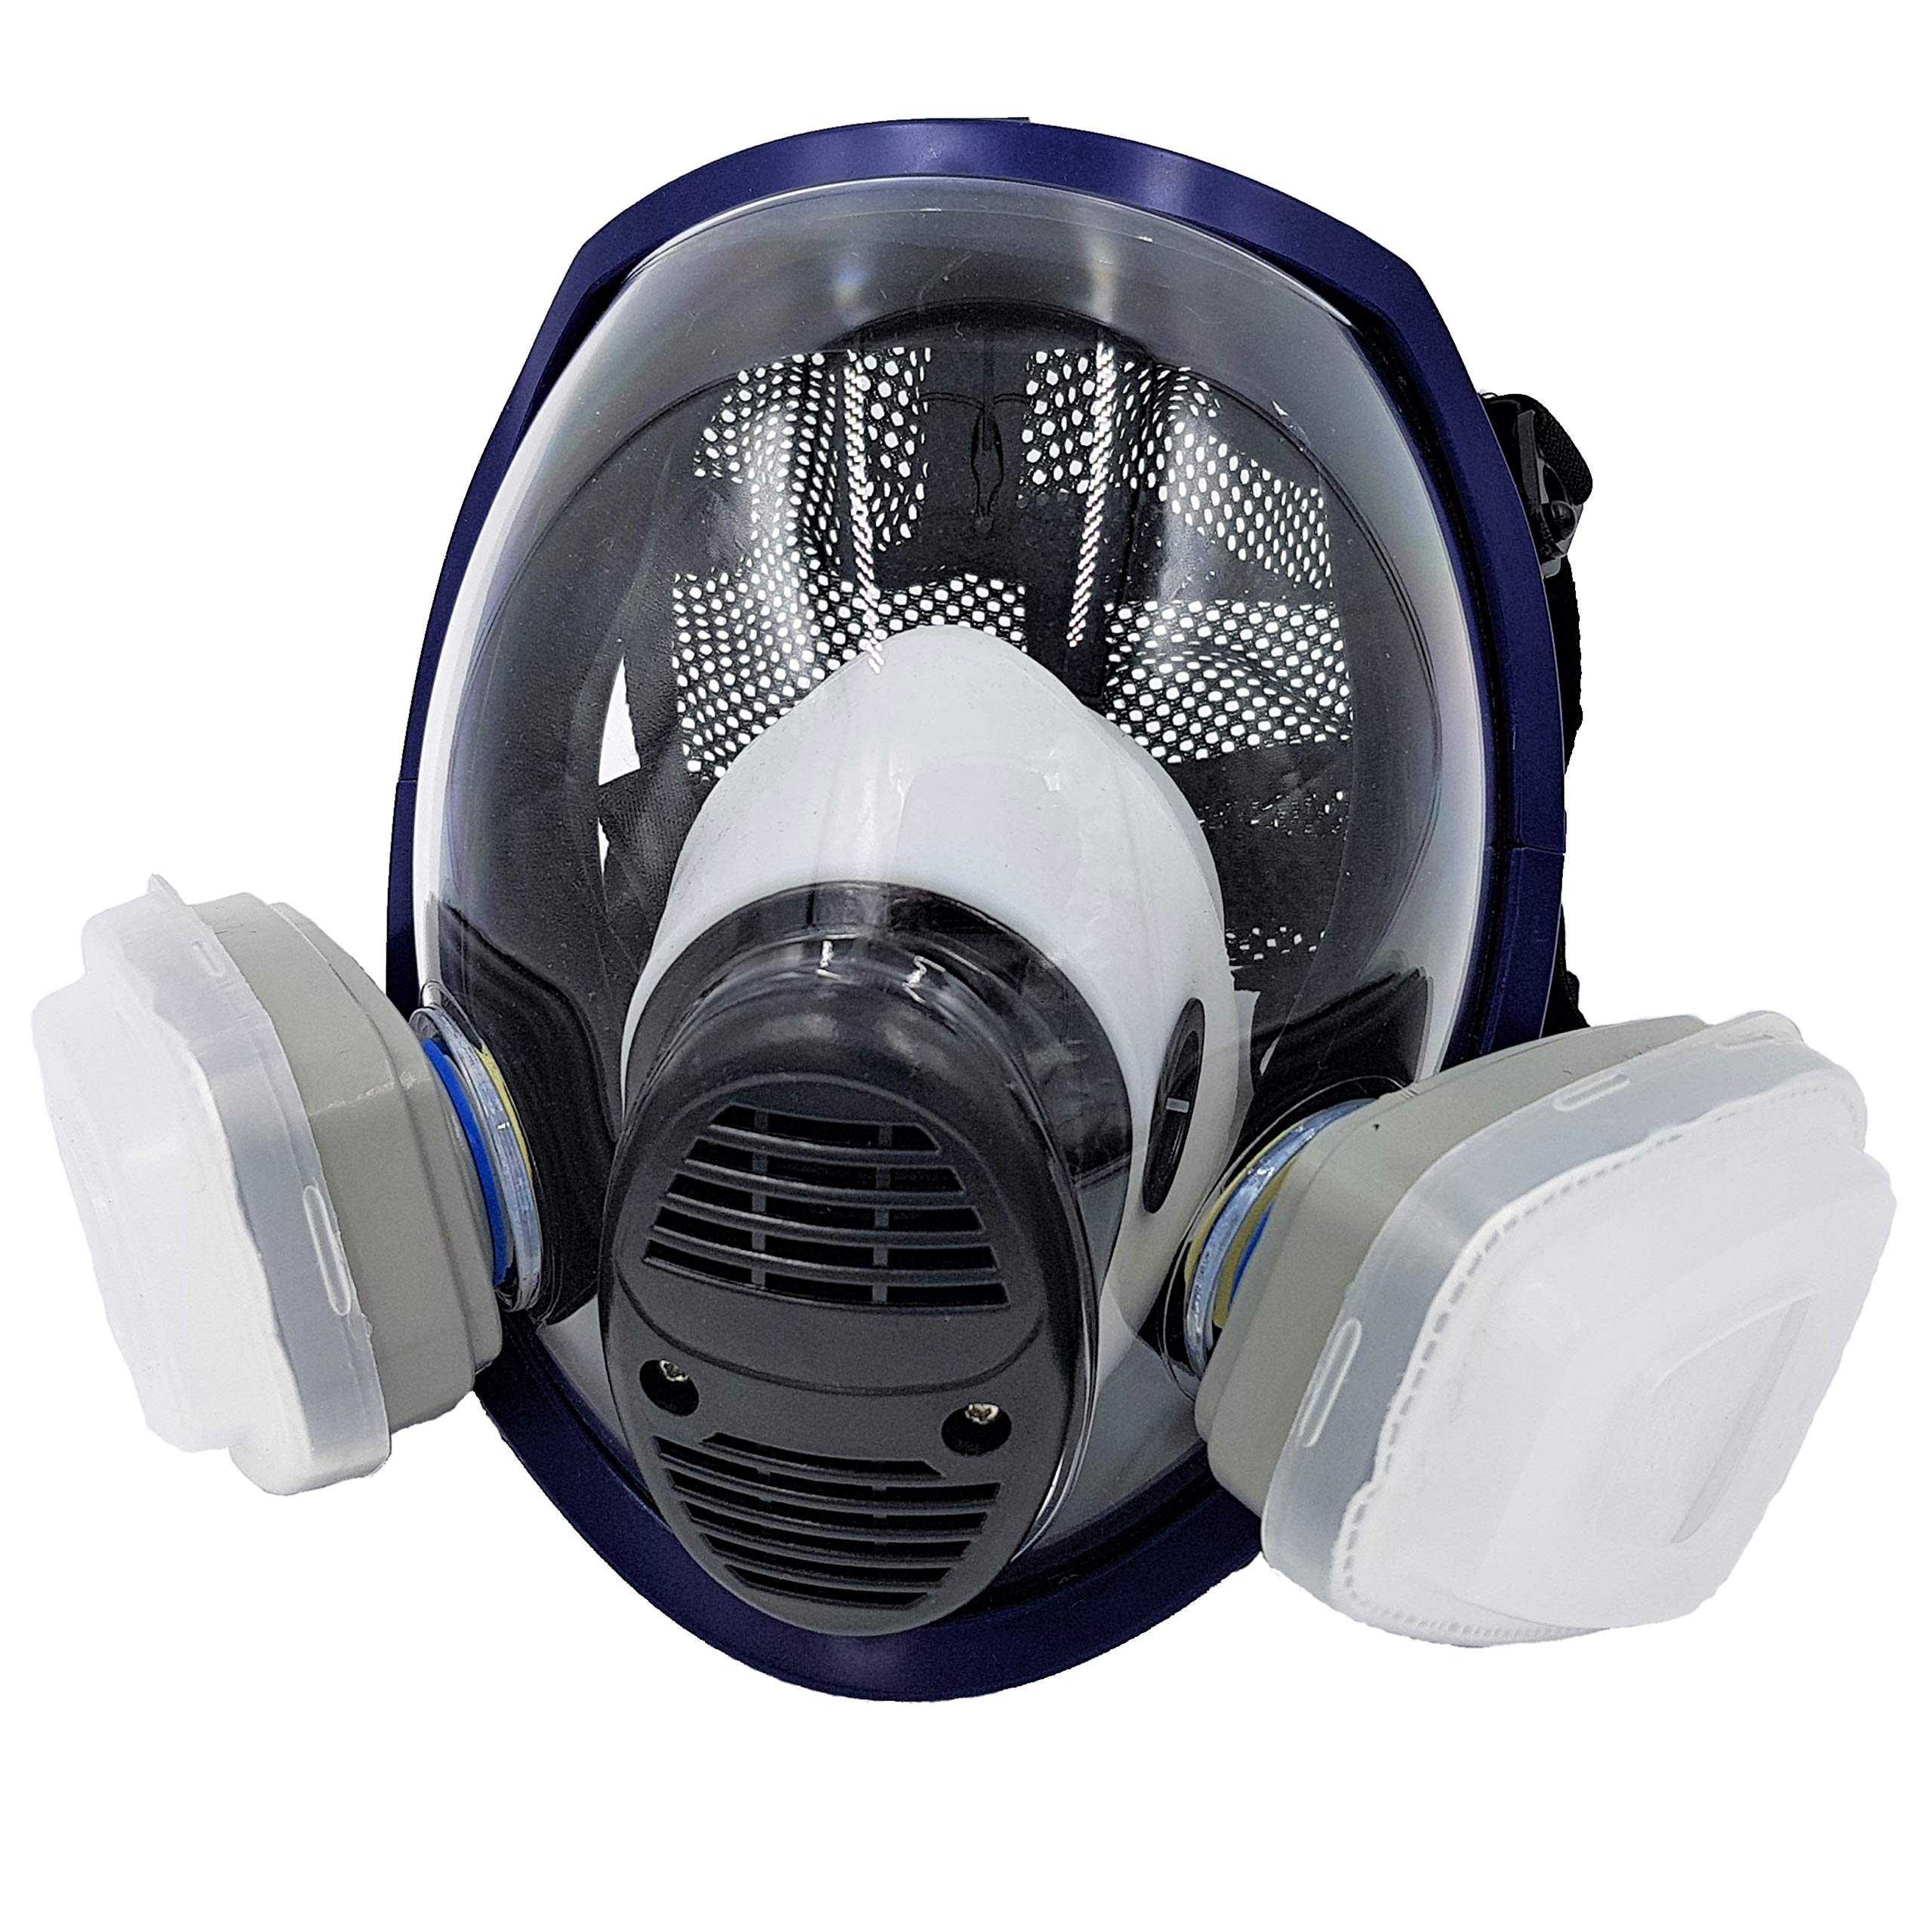 WiseLime Organic Full Face Respirator Mask for Chemicals, Smoke, Paint Spray and Tear Gas | Comes with 2 Filters (Gas Mask + 1 Pair of #3 Filter Cartridges) by WiseLime